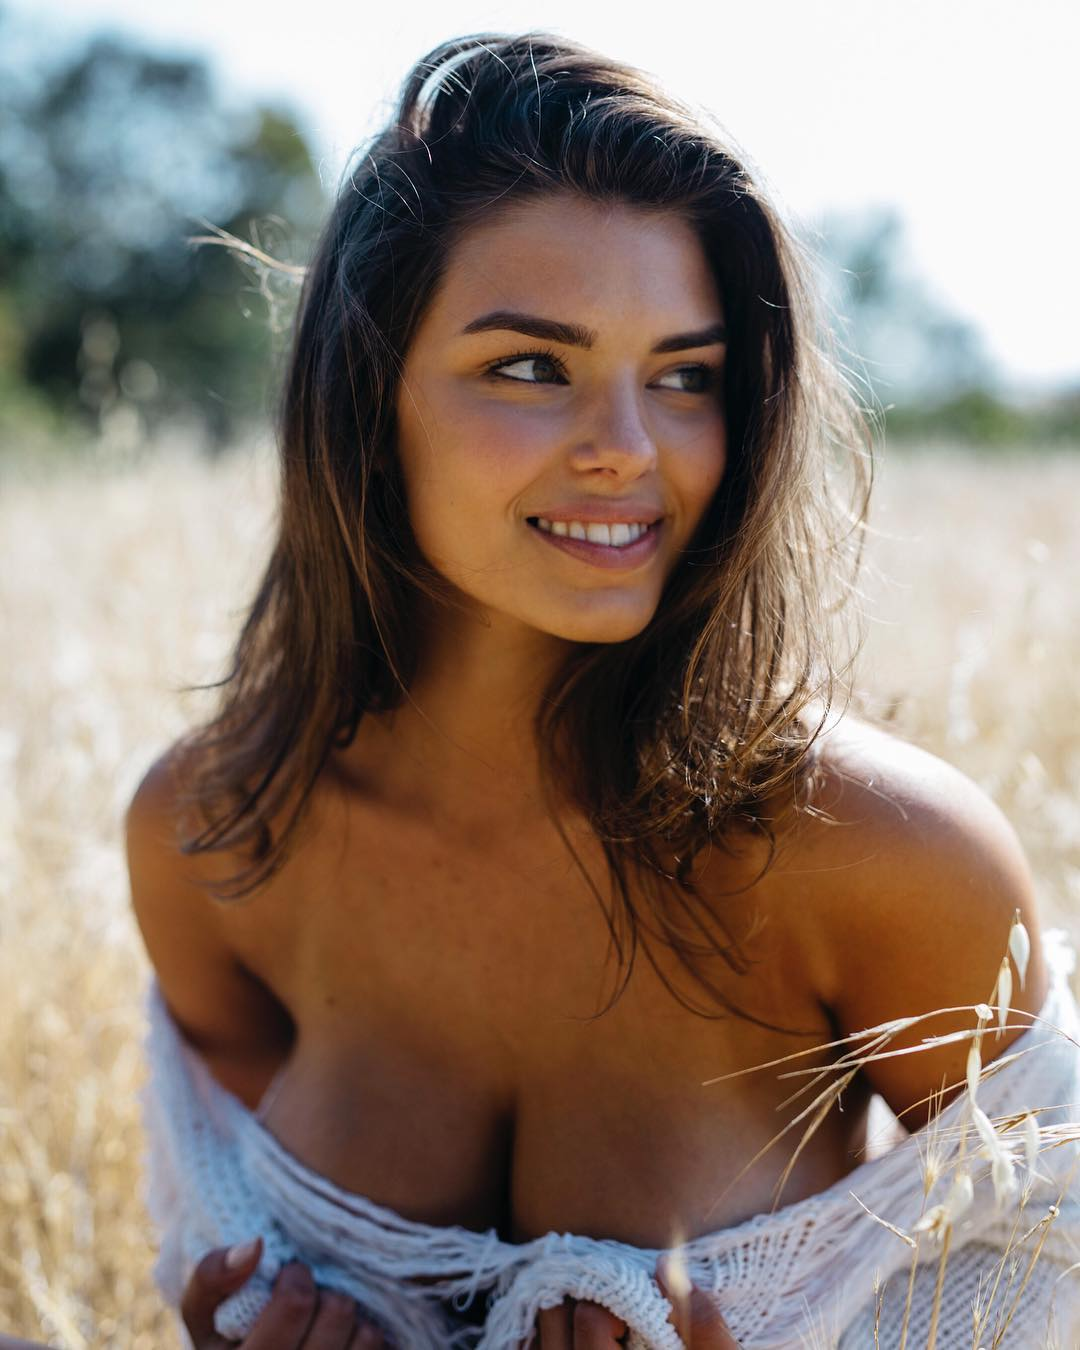 Lauren Searle- 澳洲模特知性美女高清写真